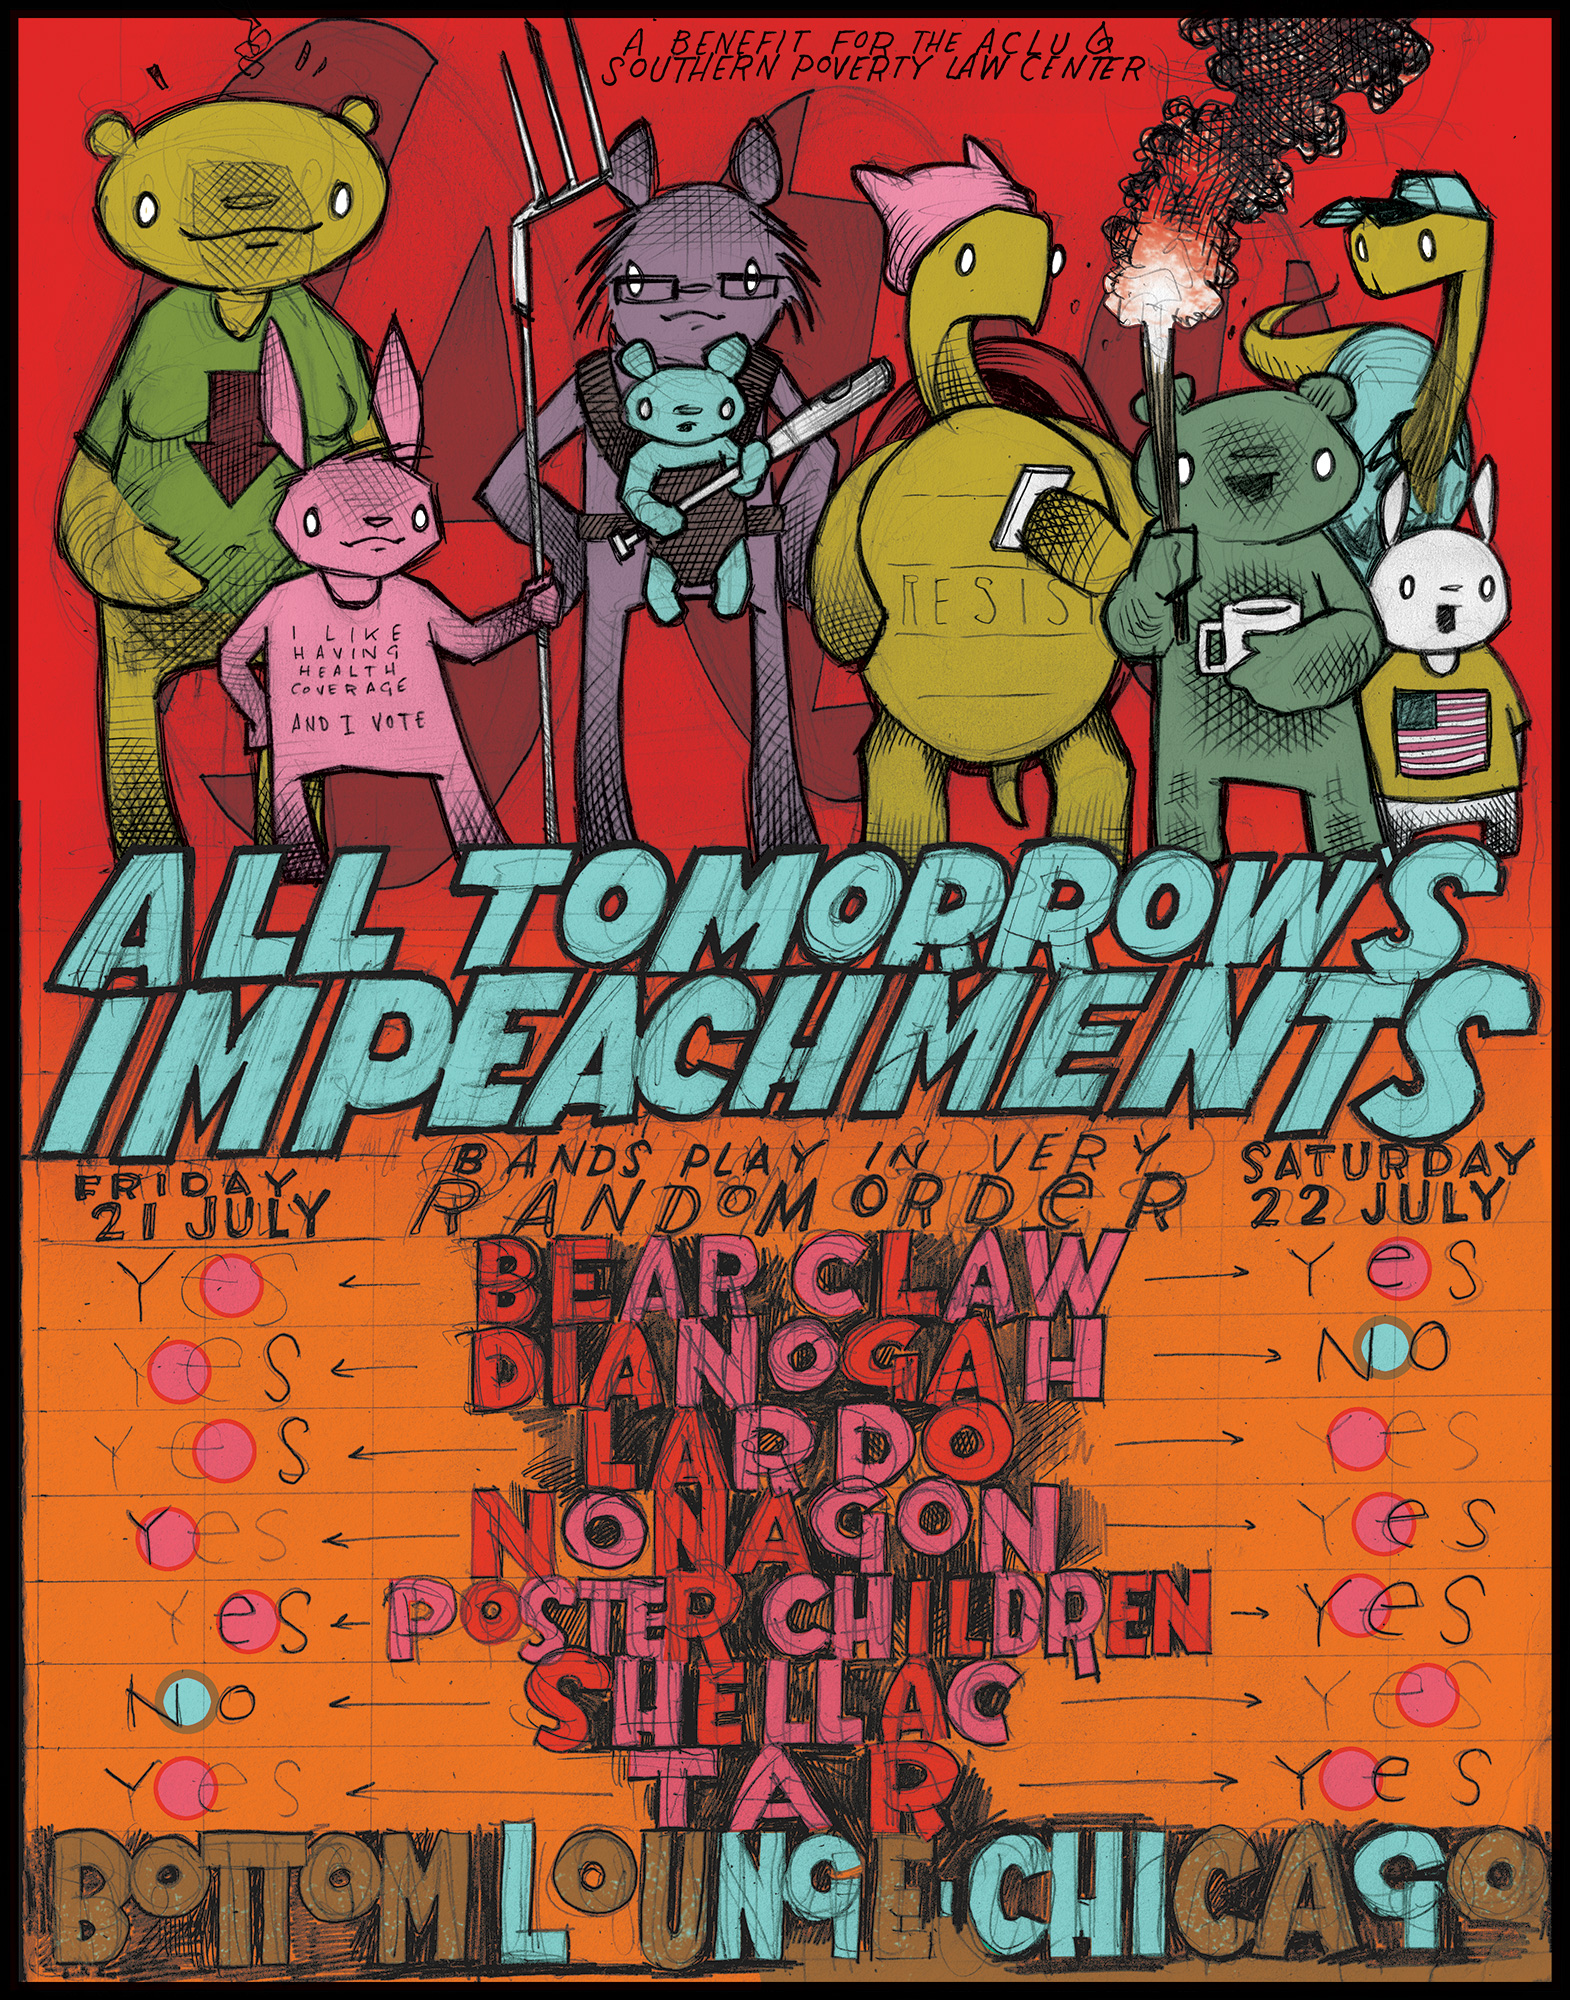 All Tomorrow's Impeachments Presents A Benefit for the ACLU and SPLC: BEAR CLAW * DIANOGAH * LARDO * NONAGON * POSTER CHILDREN * TAR